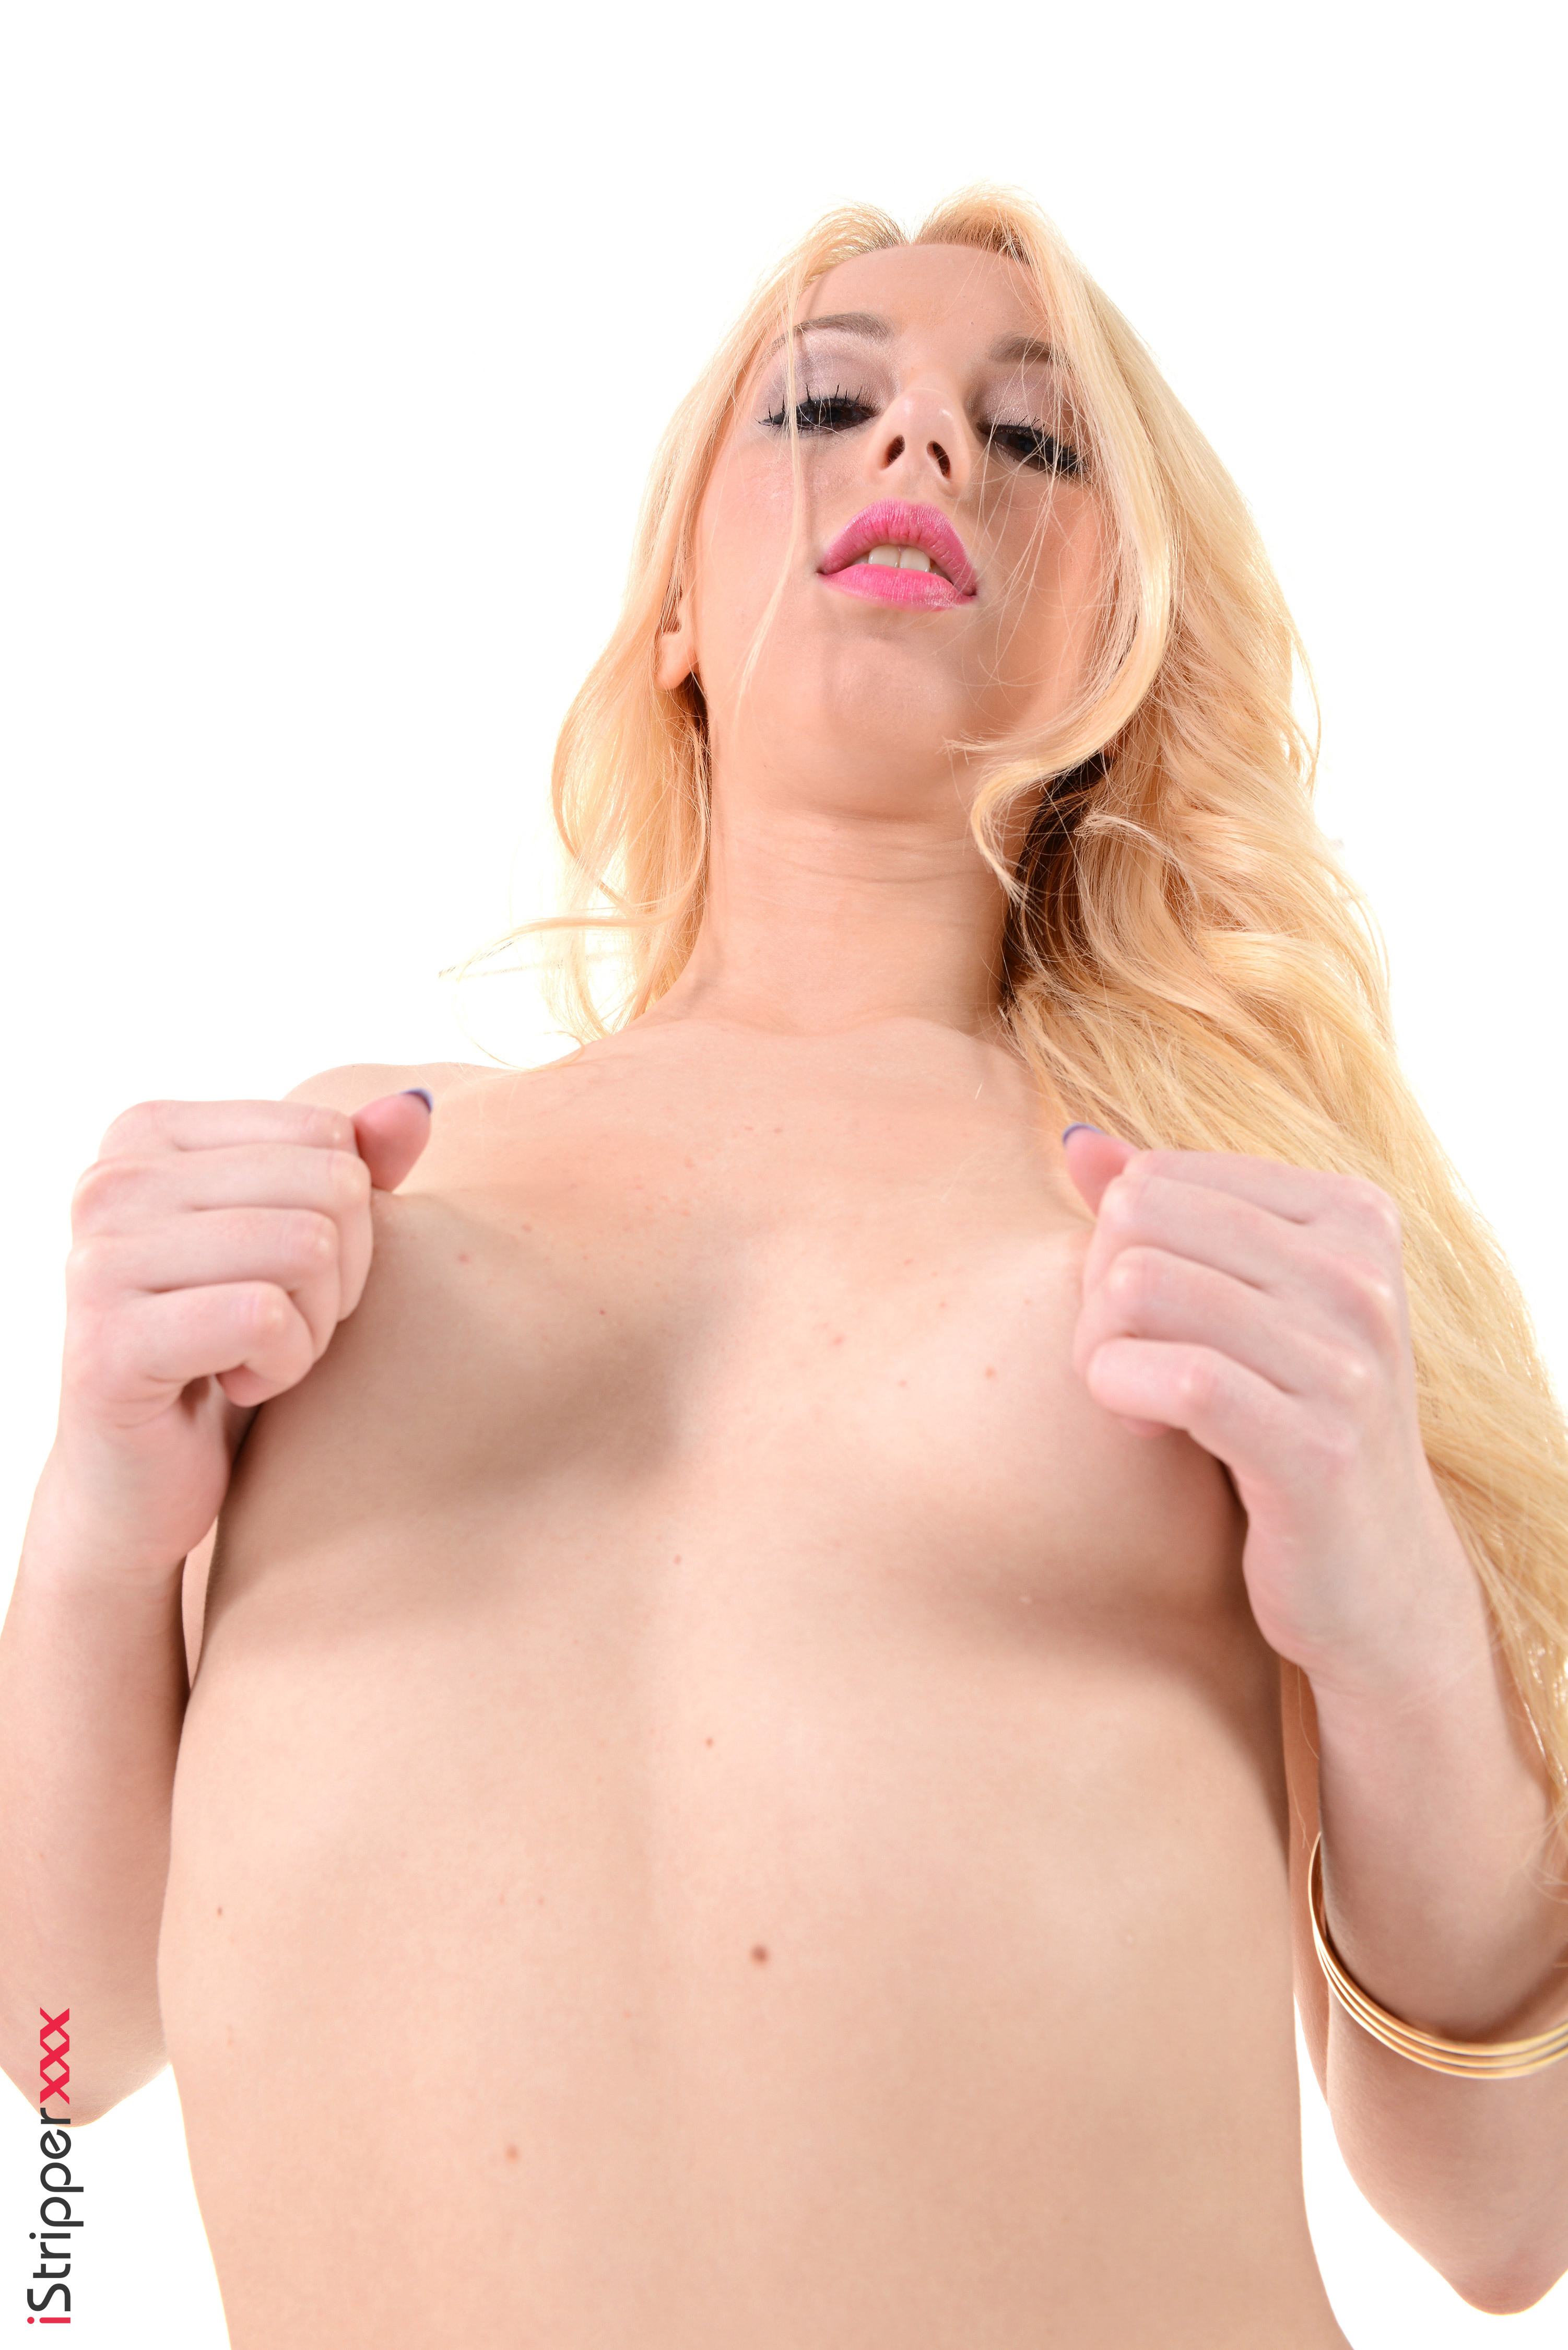 nude sexy wallpaper